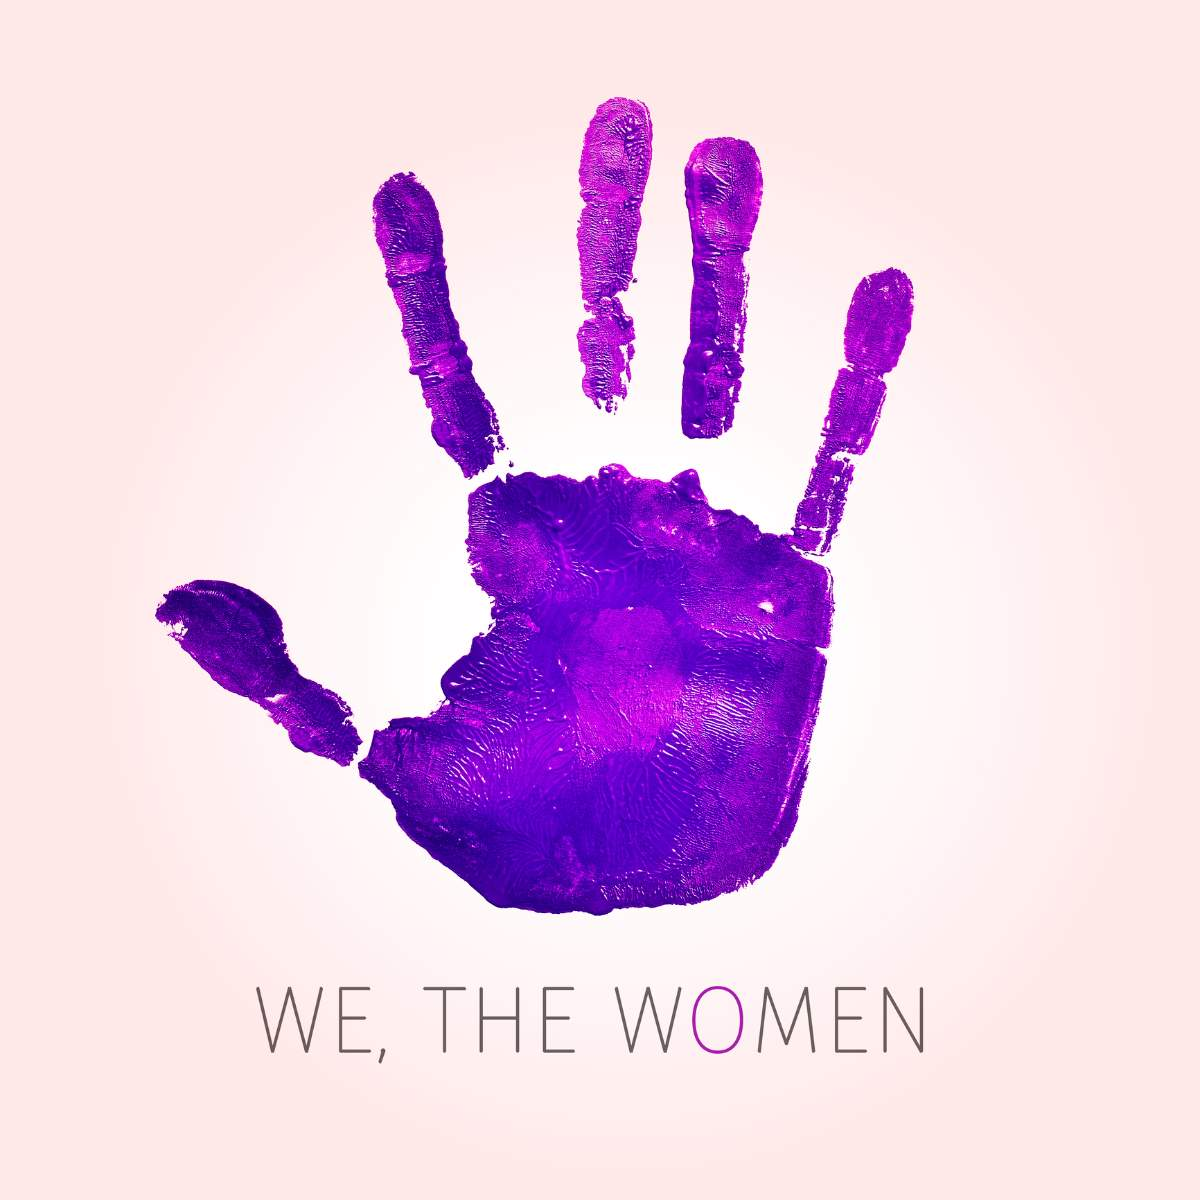 a violet handprint and the text we, the womens written on a soft pink background